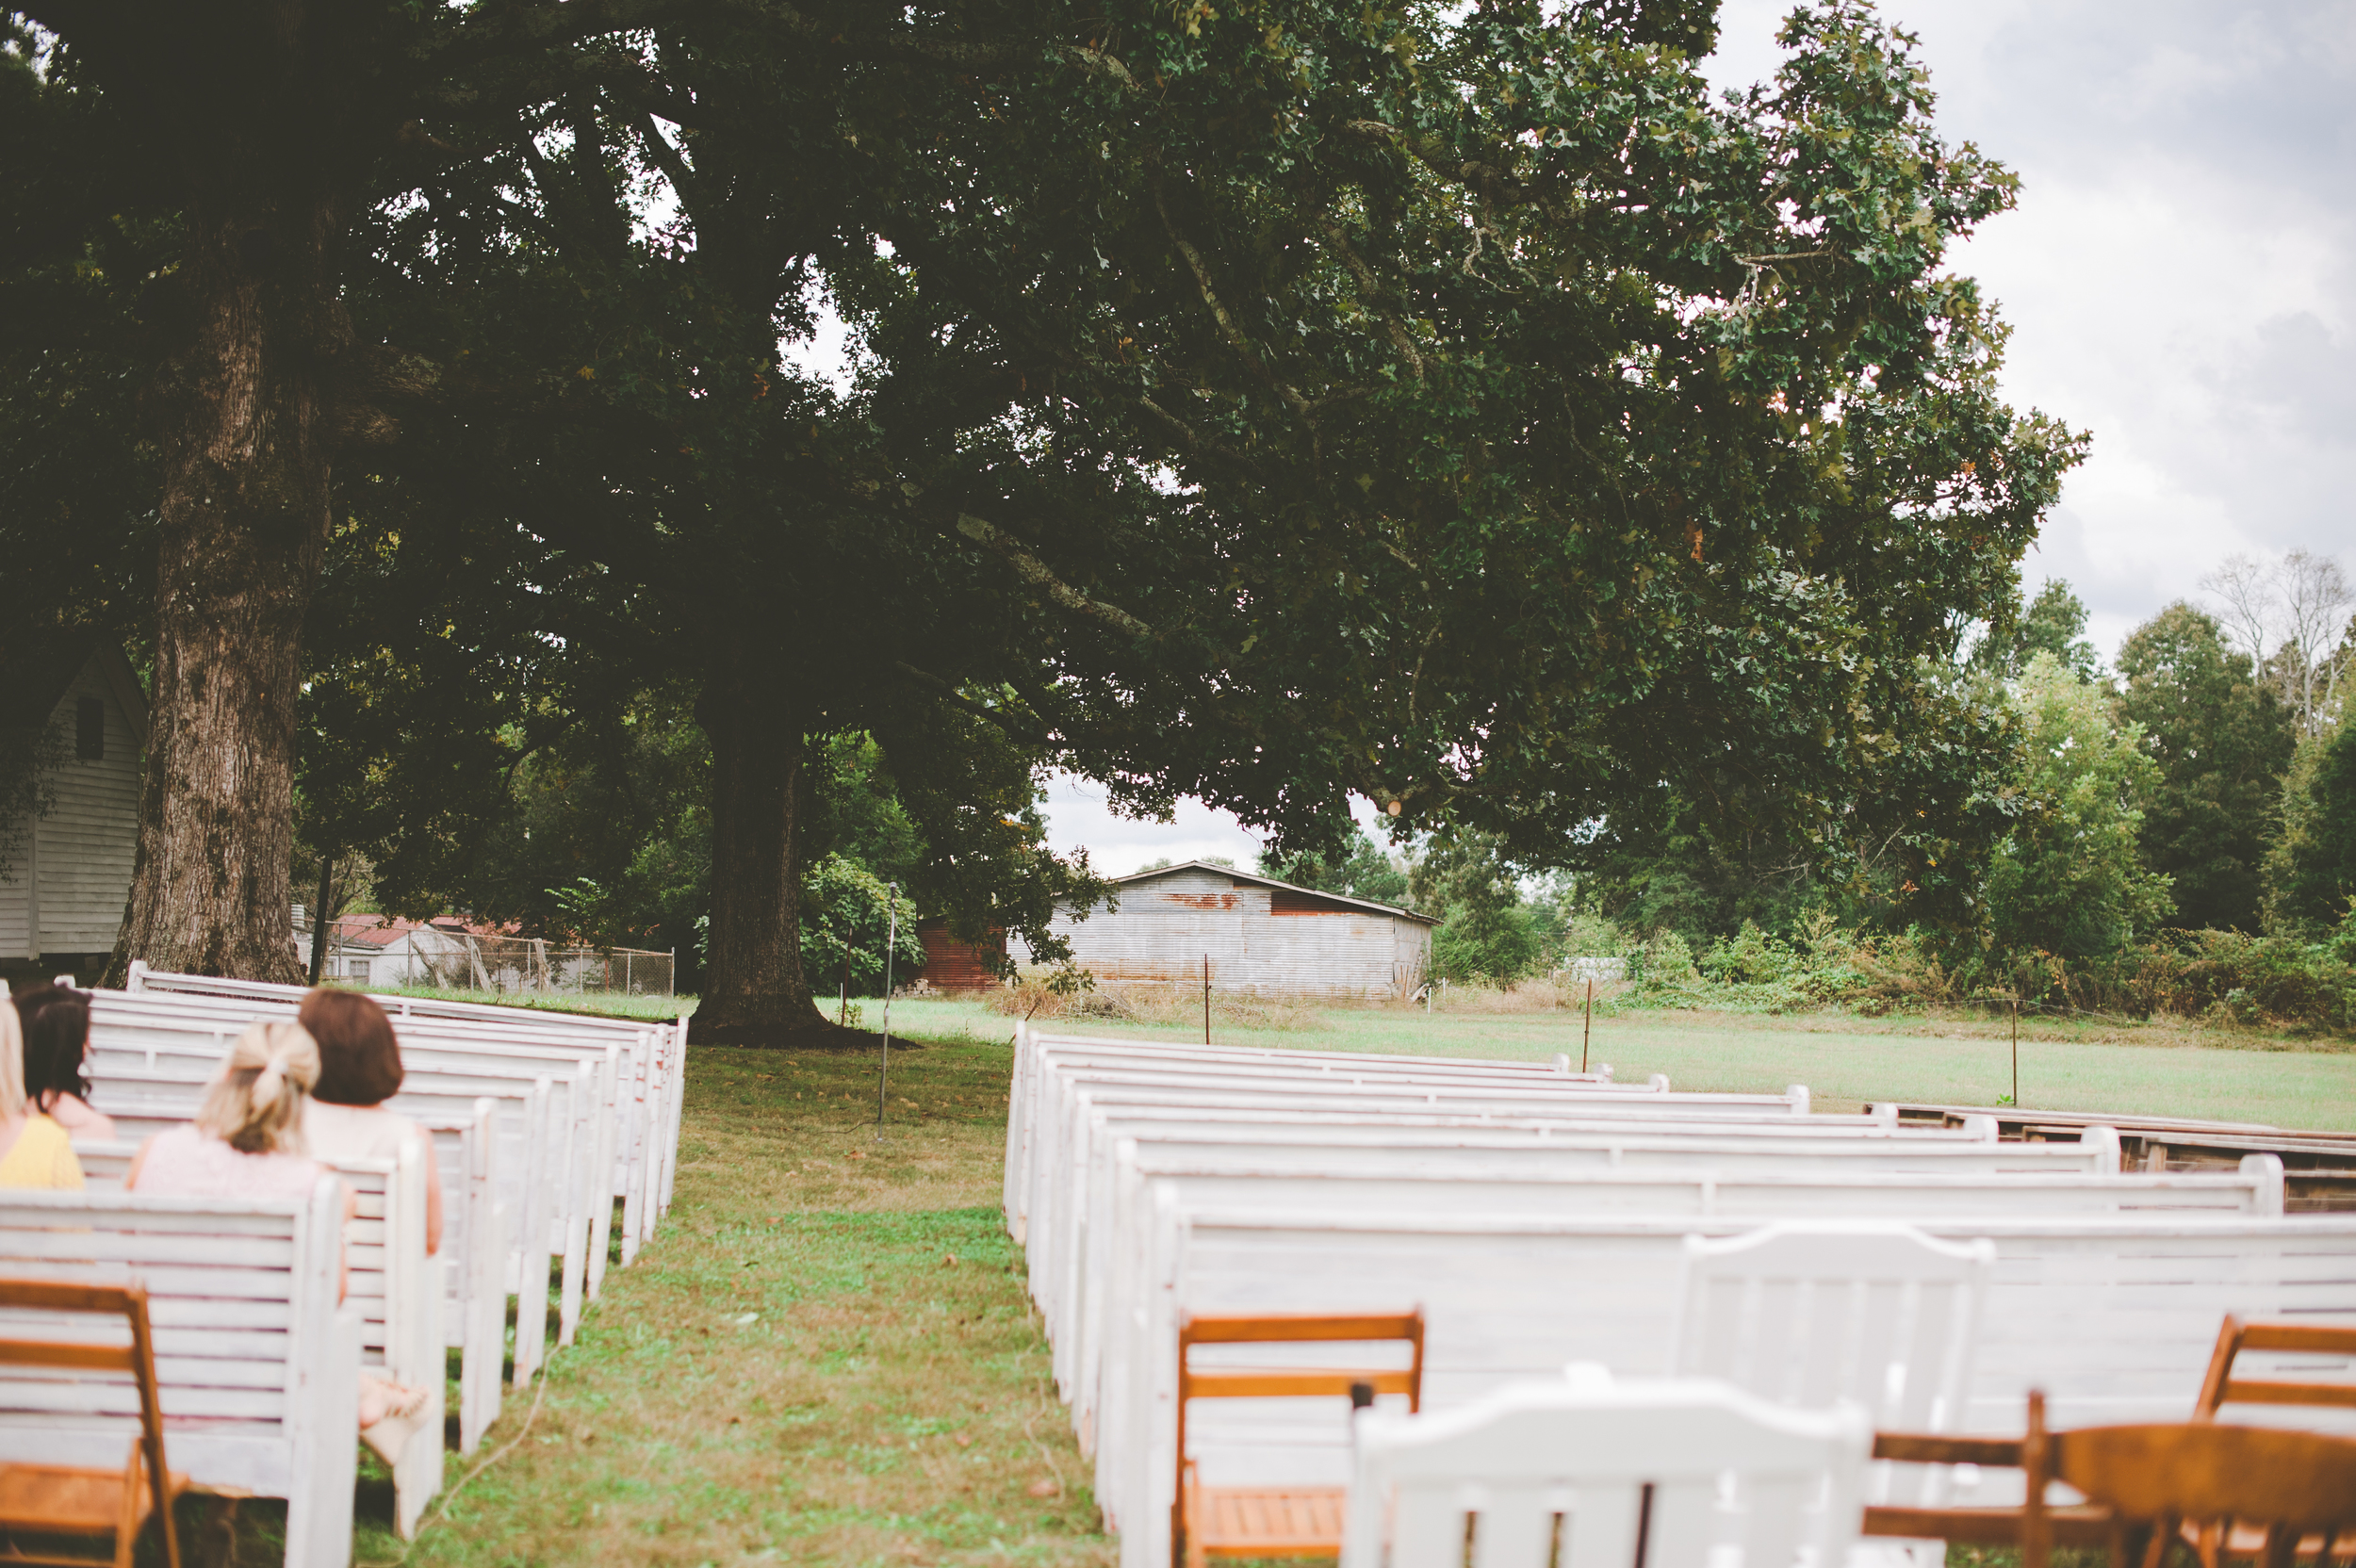 Pews at a Tennessee Wedding photo from http://www.zipporahphotography.com/